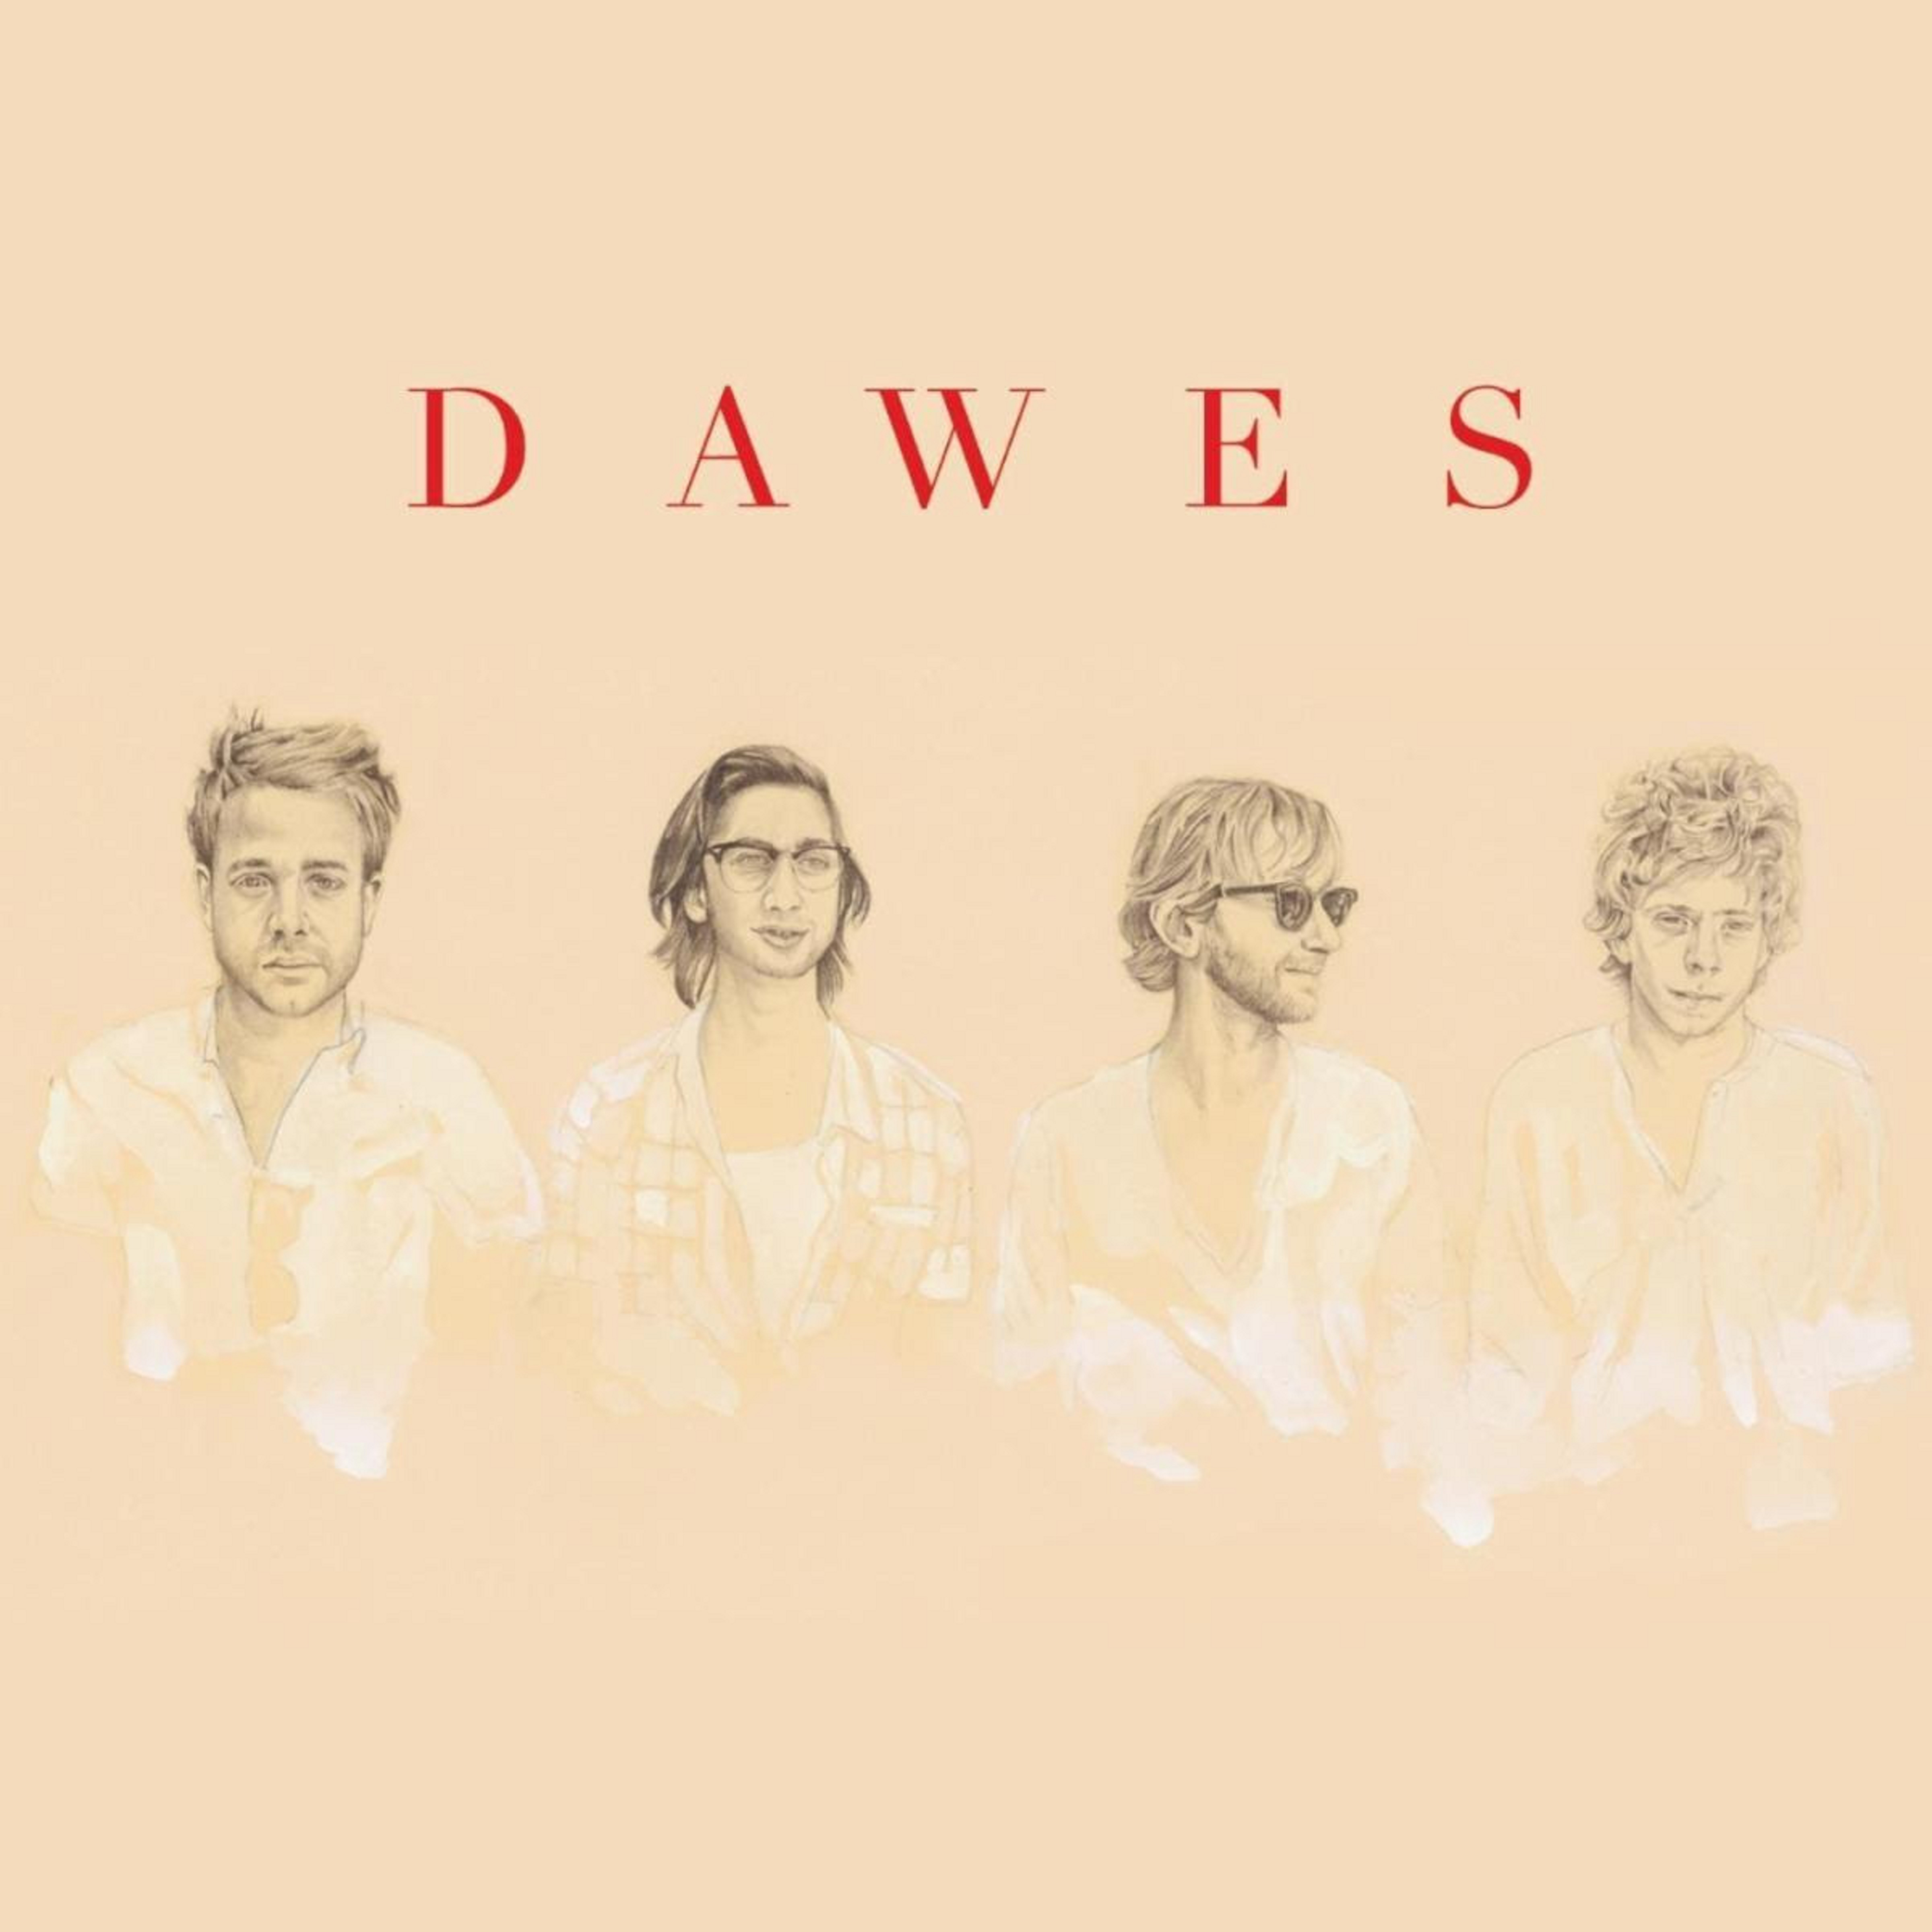 DAWES PERFORMING DEBUT NORTH HILLS IN ITS ENTIRETY FRIDAY, DEC. 4